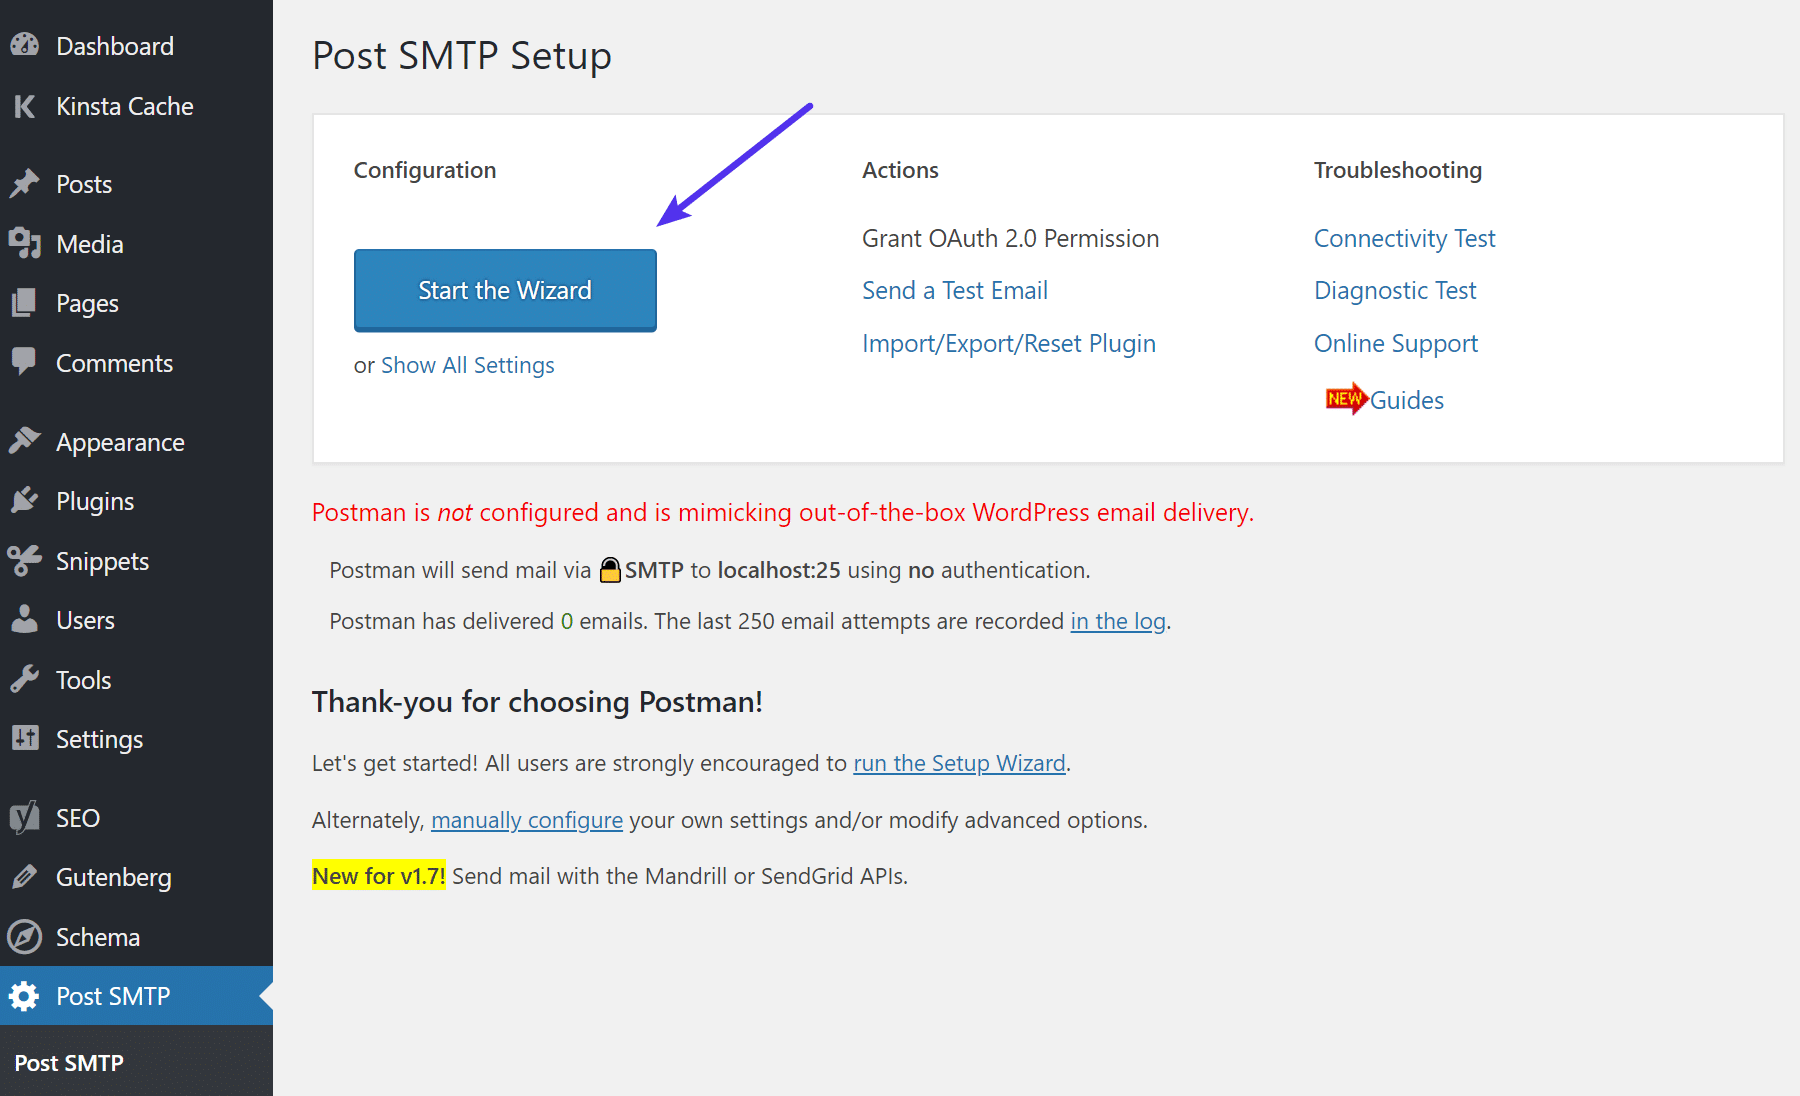 Post SMTP start wizard